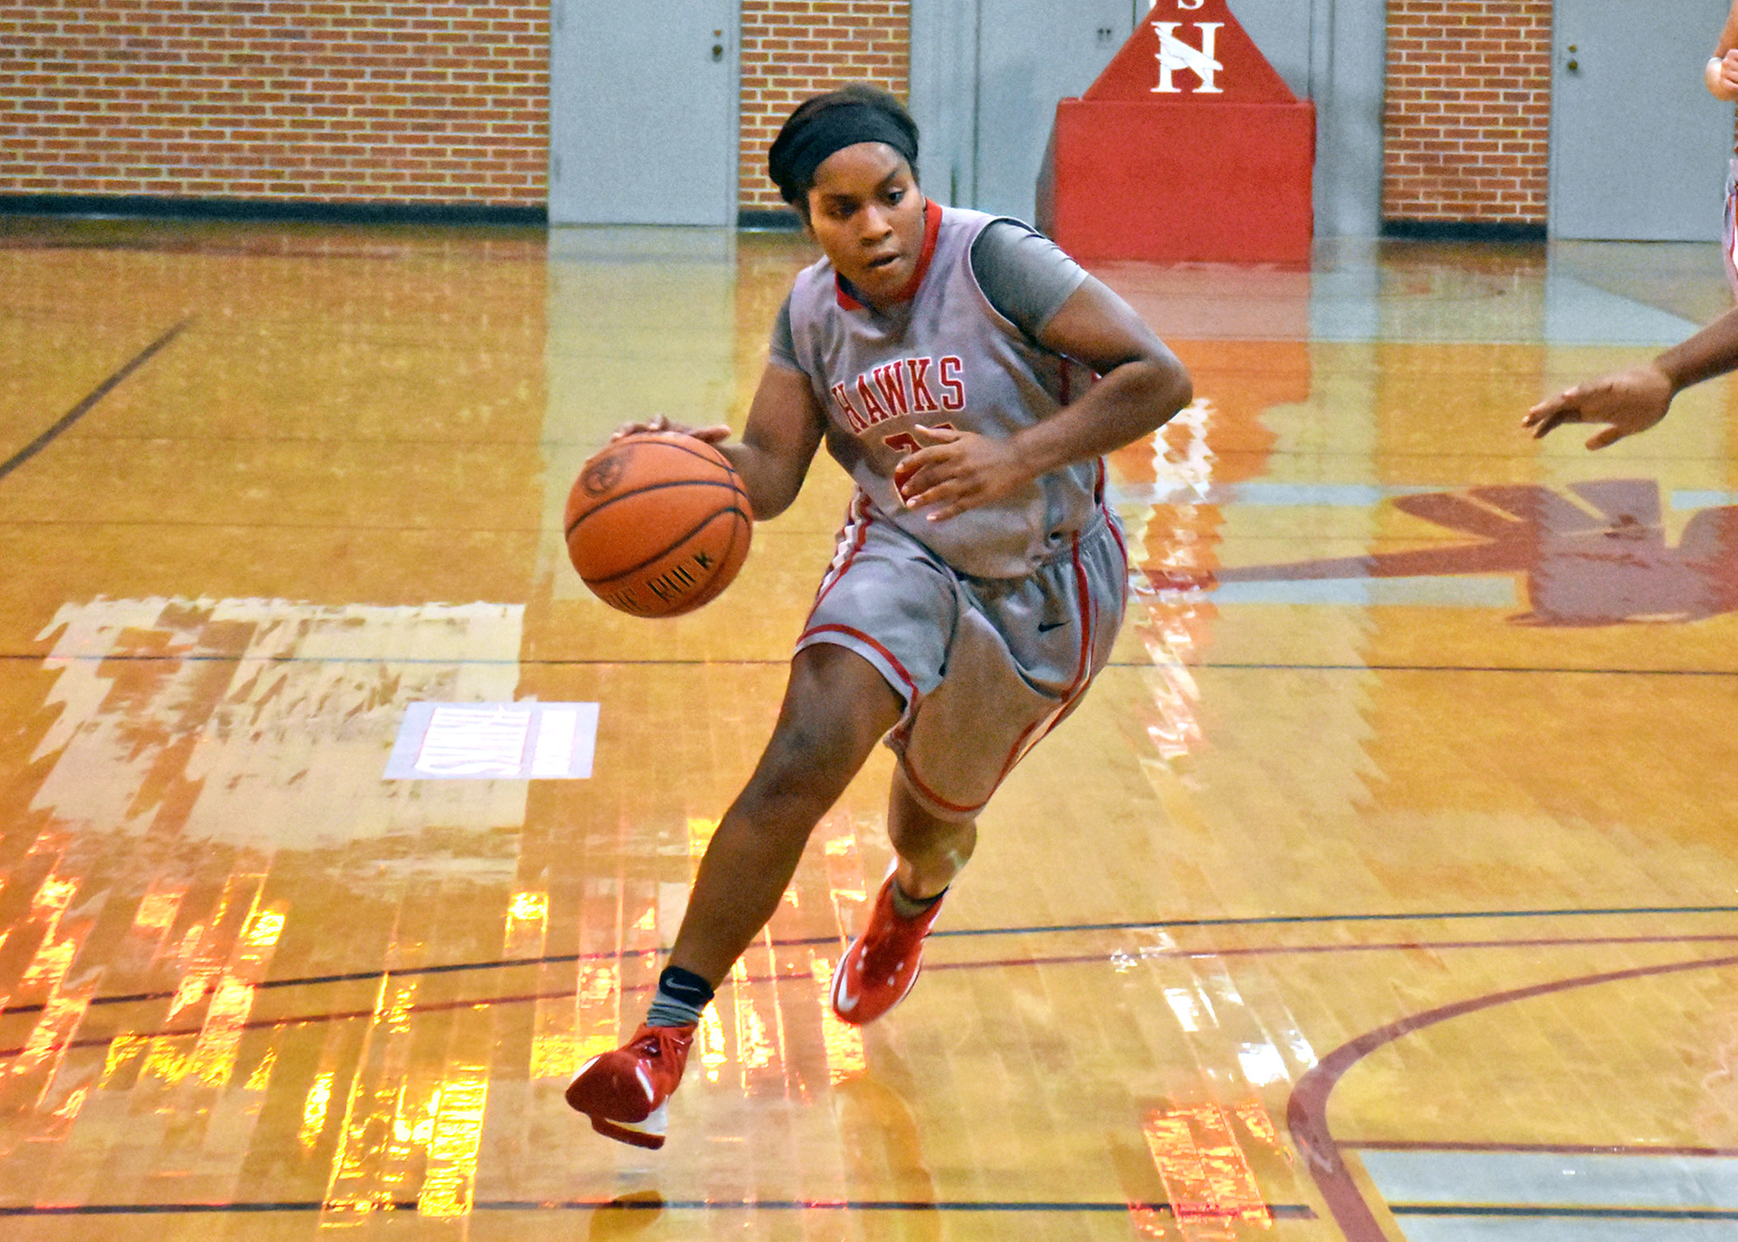 Senior Jello Weatherspoon led Huntingdon with 13 points in Tuesday's 55-39 loss to Berry. (Photo by Wesley Lyle)